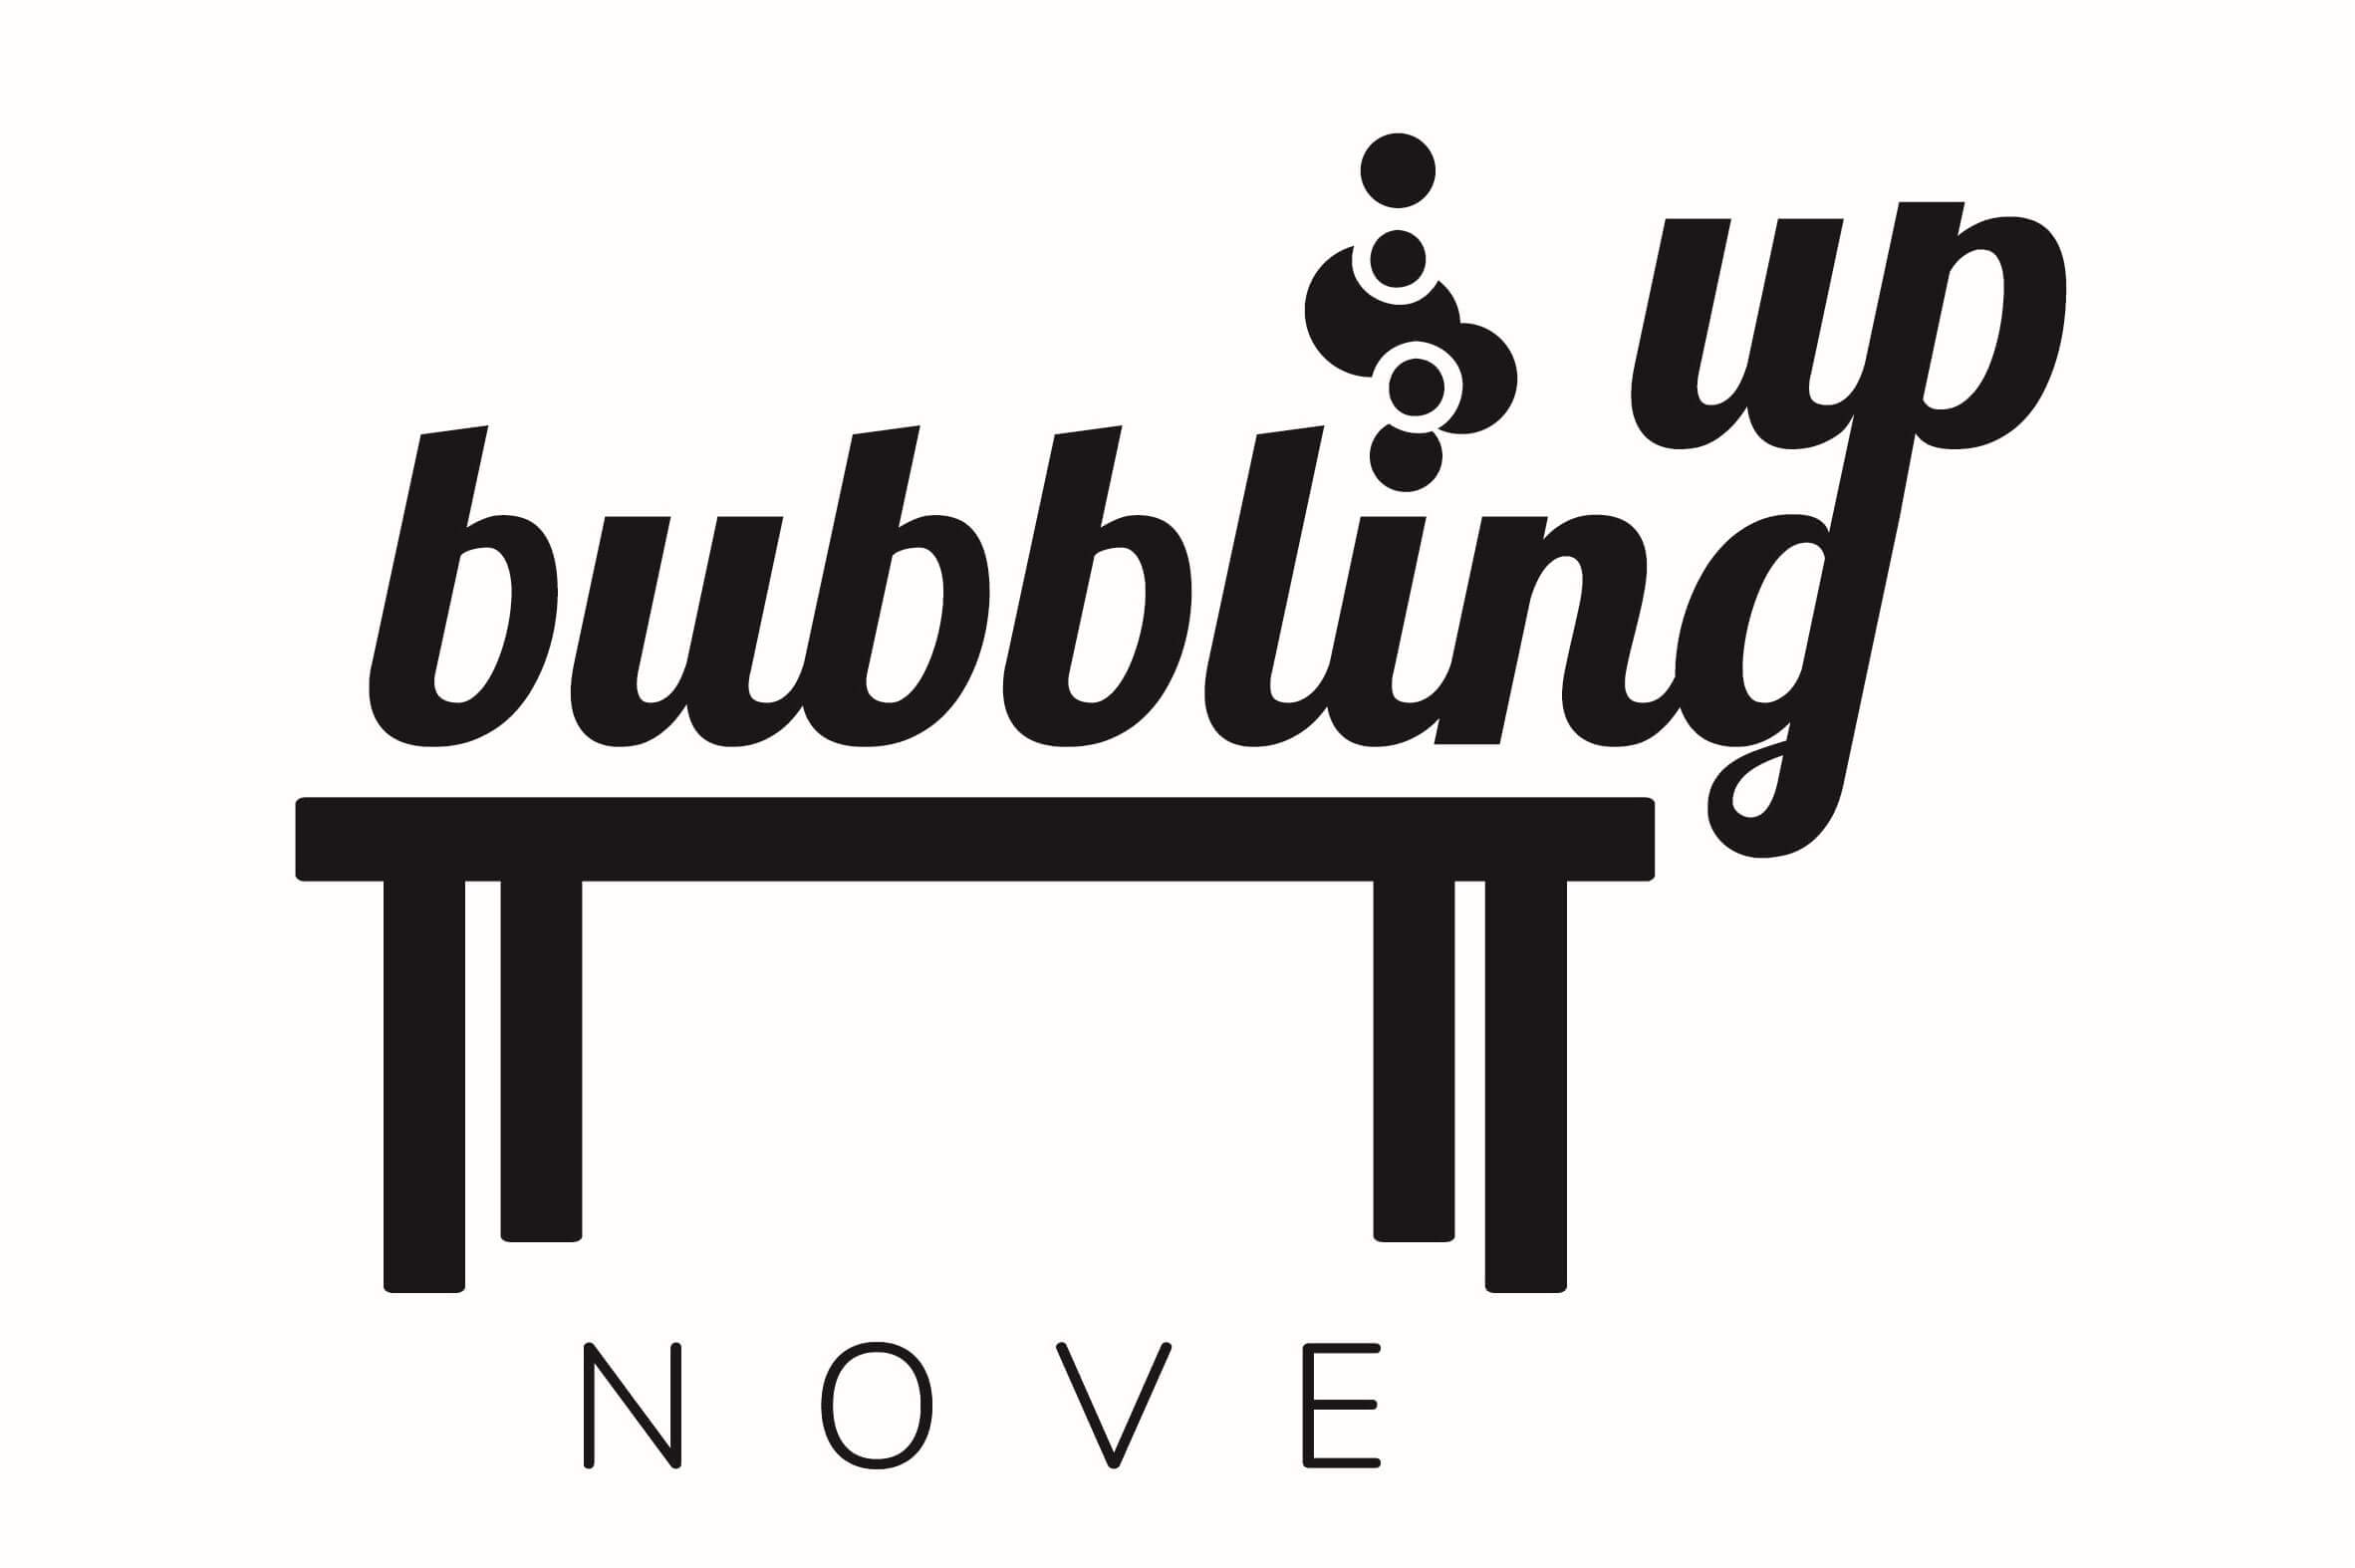 NOVE's Bubbling Up takes on artificial intelligence